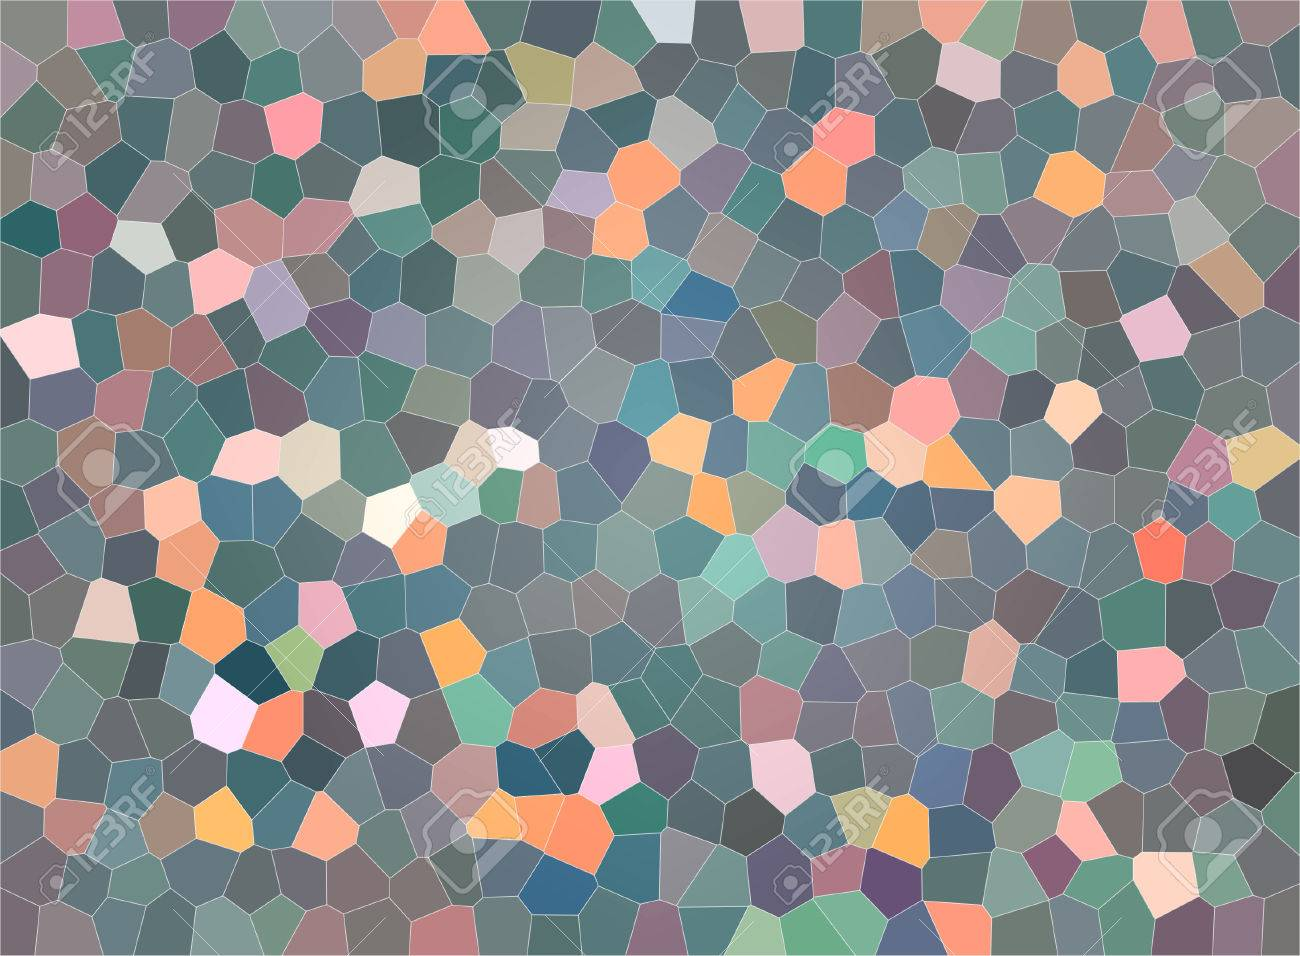 Beautiful vintage old abstract background with colorful mosaic